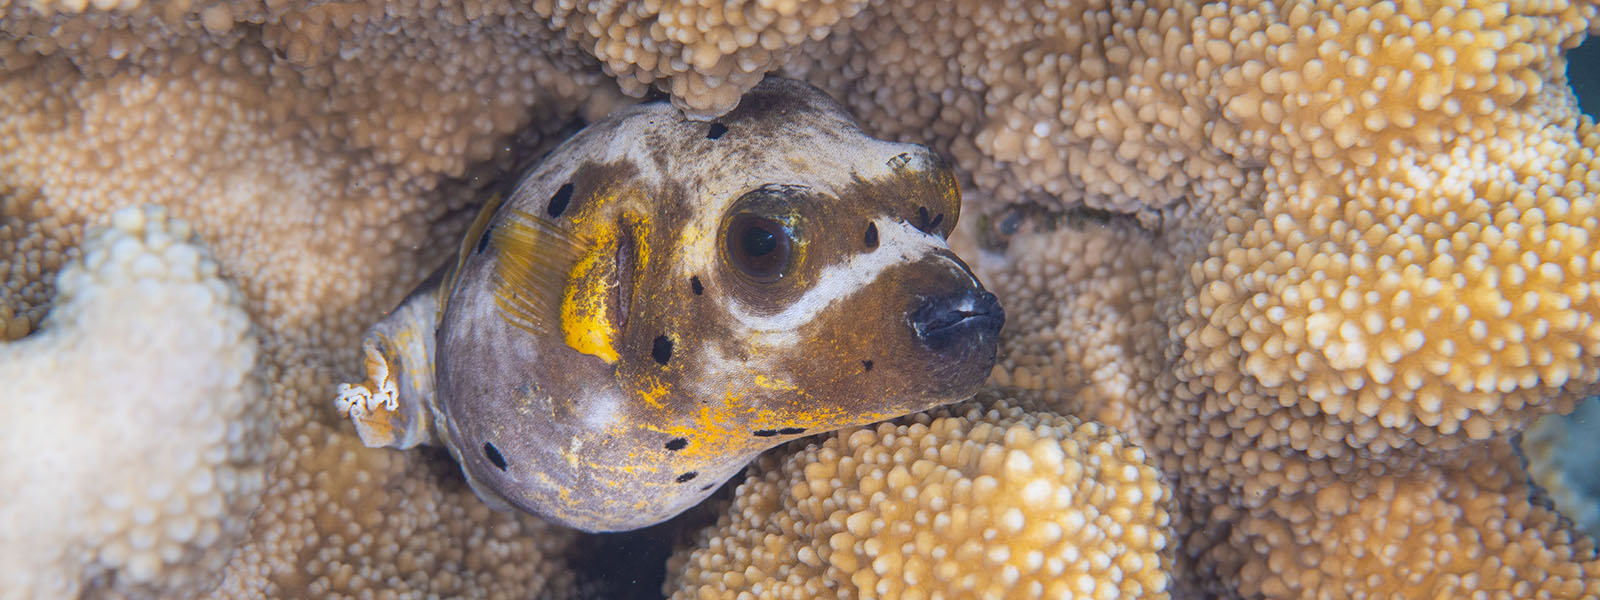 Pufferfish are common on reefs we snorkel upon in places like Ambon, Alor, and Komodo